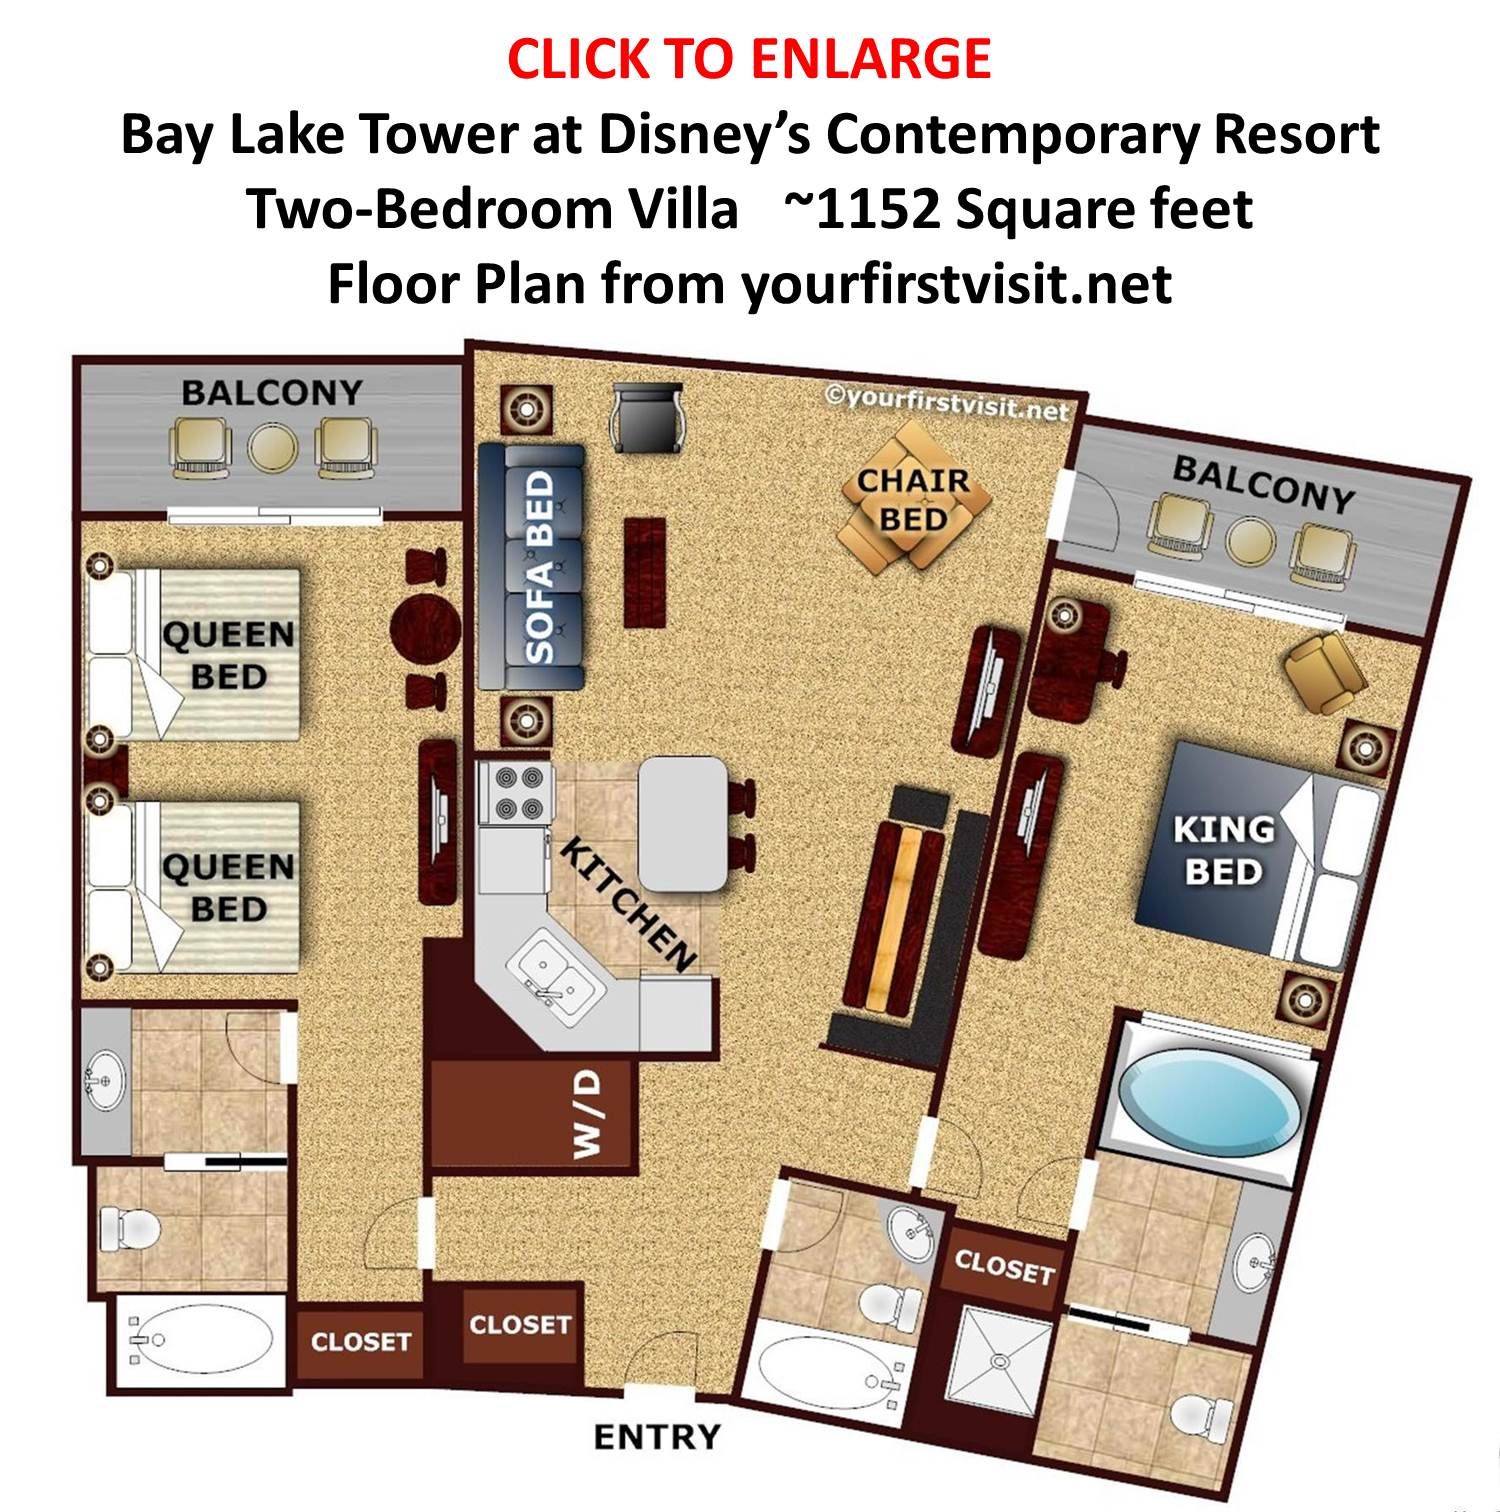 Theming And Accommodations At Bay Lake Tower At Disney S